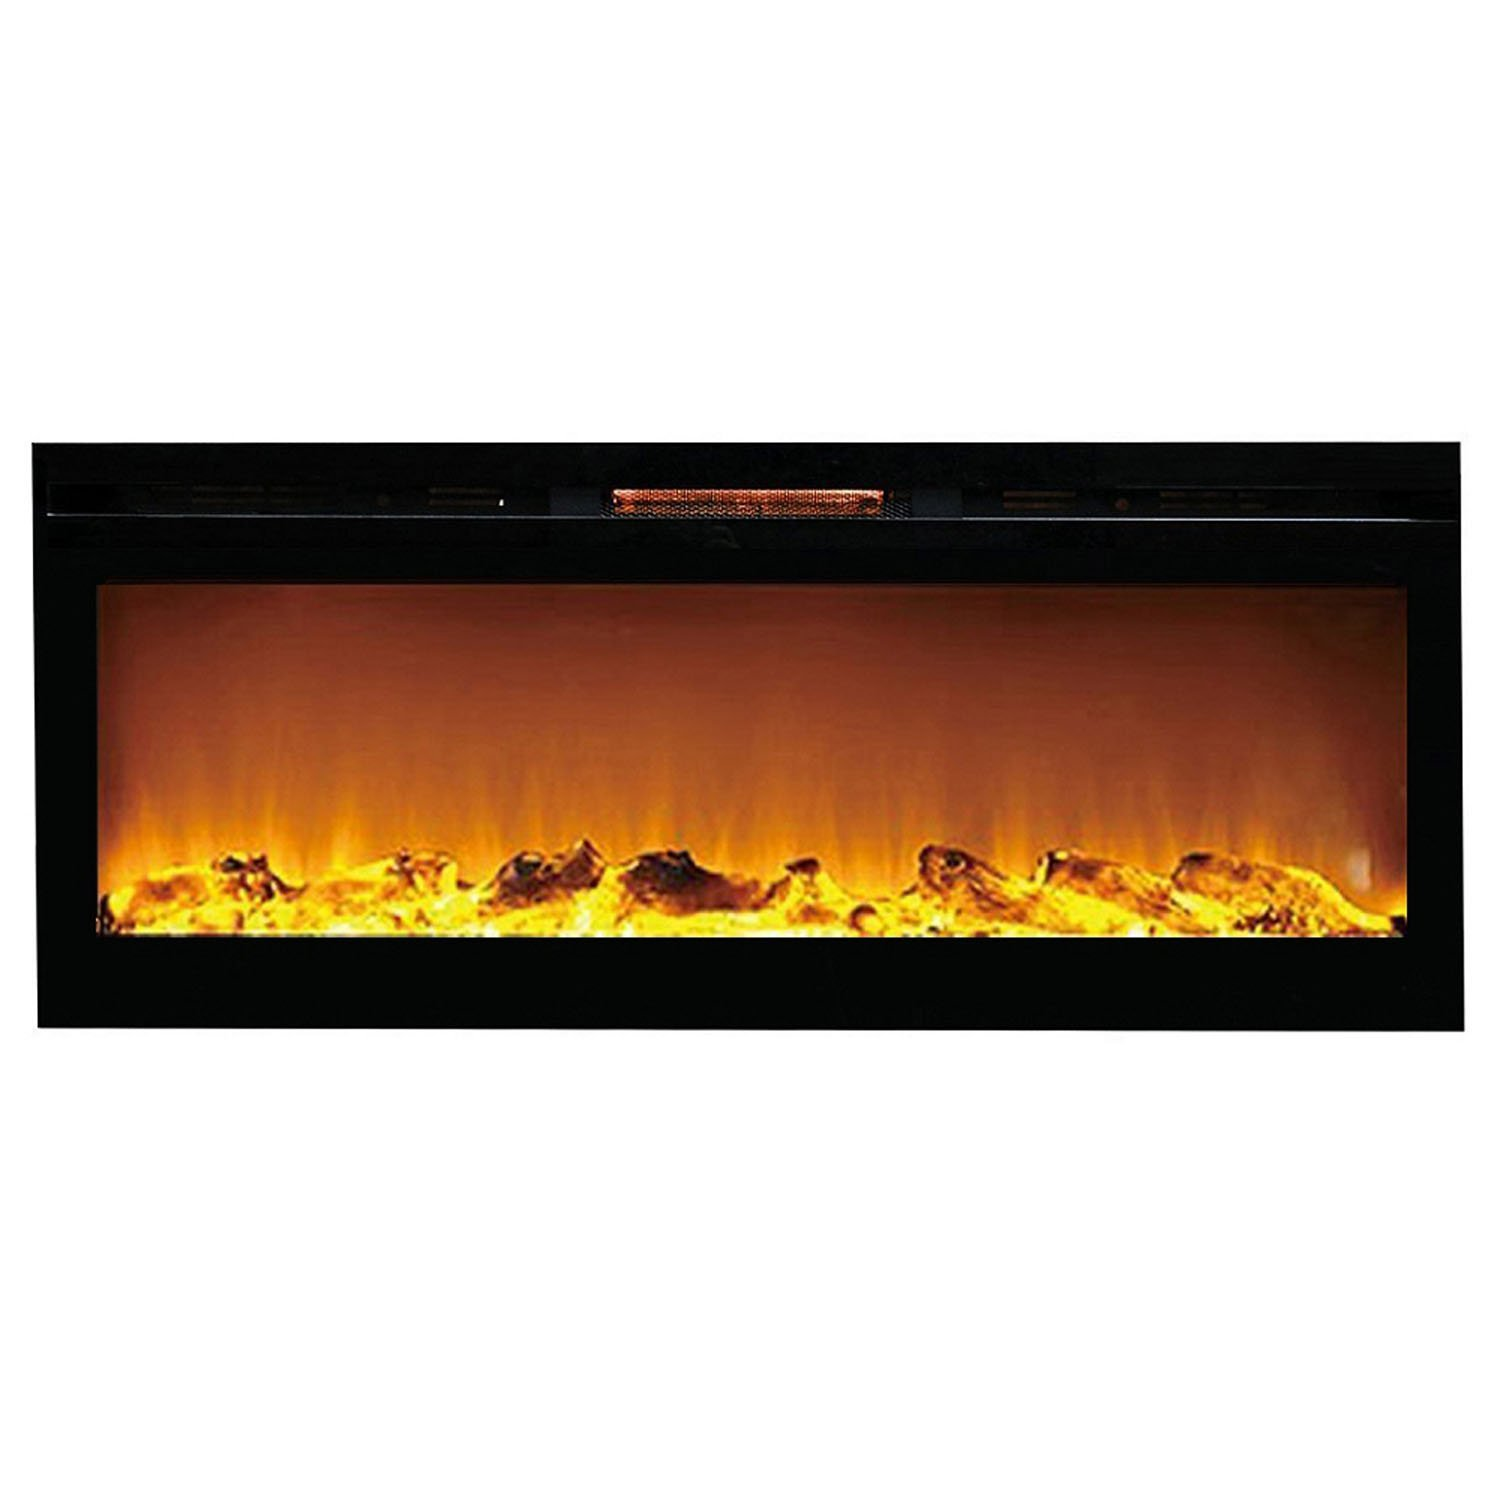 Natural gas wall mounted fireplaces - Gibson Living Gl2050wl Sydney 50 Inch Log Recessed Wall Mounted Electric Fireplace